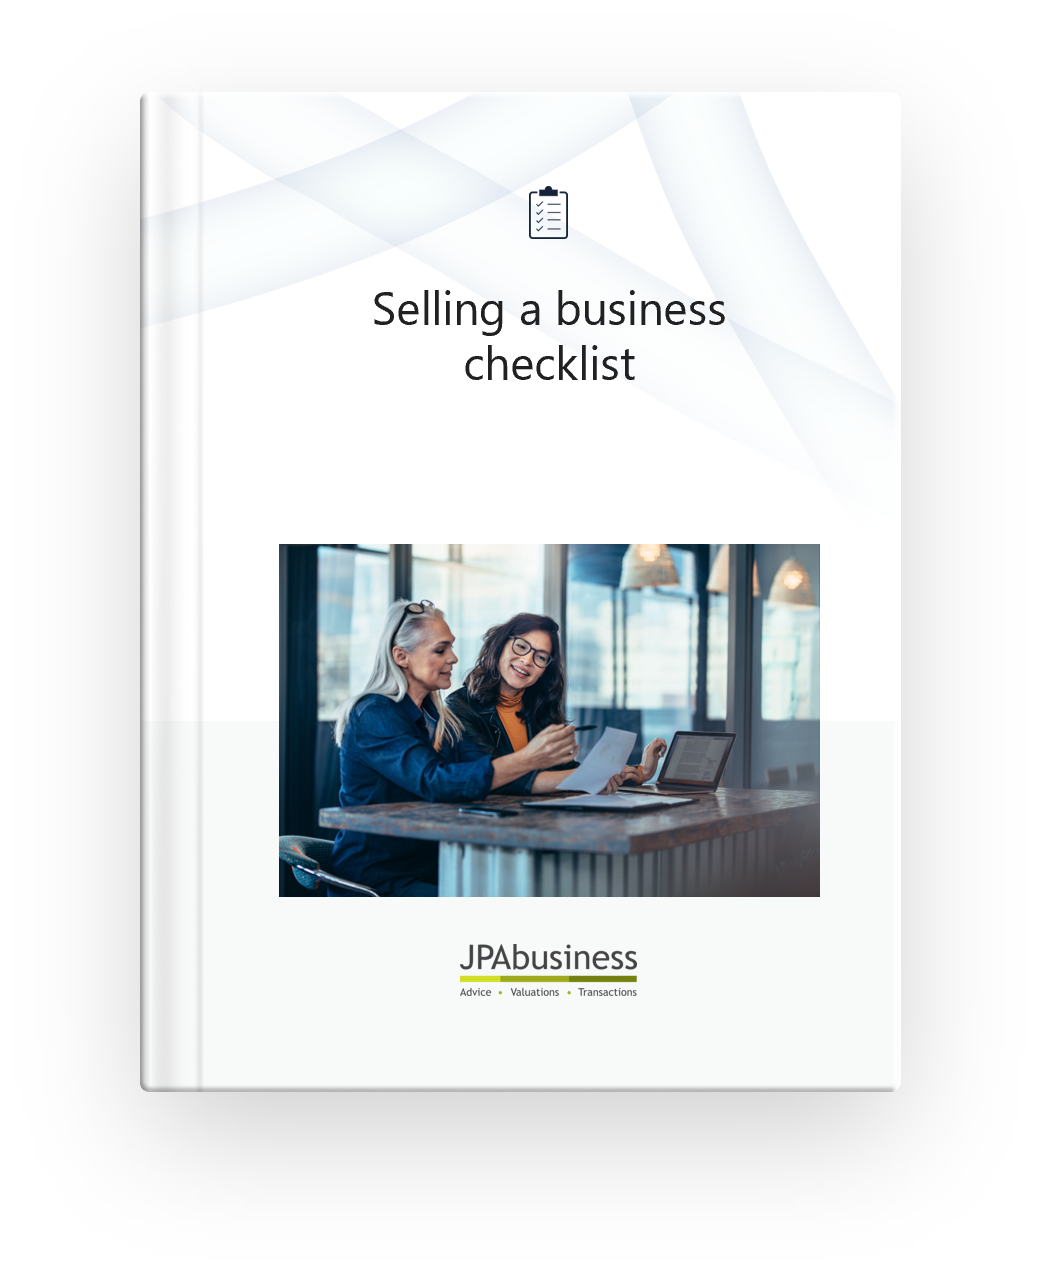 Selling_a_business_checklist_JPAbusiness